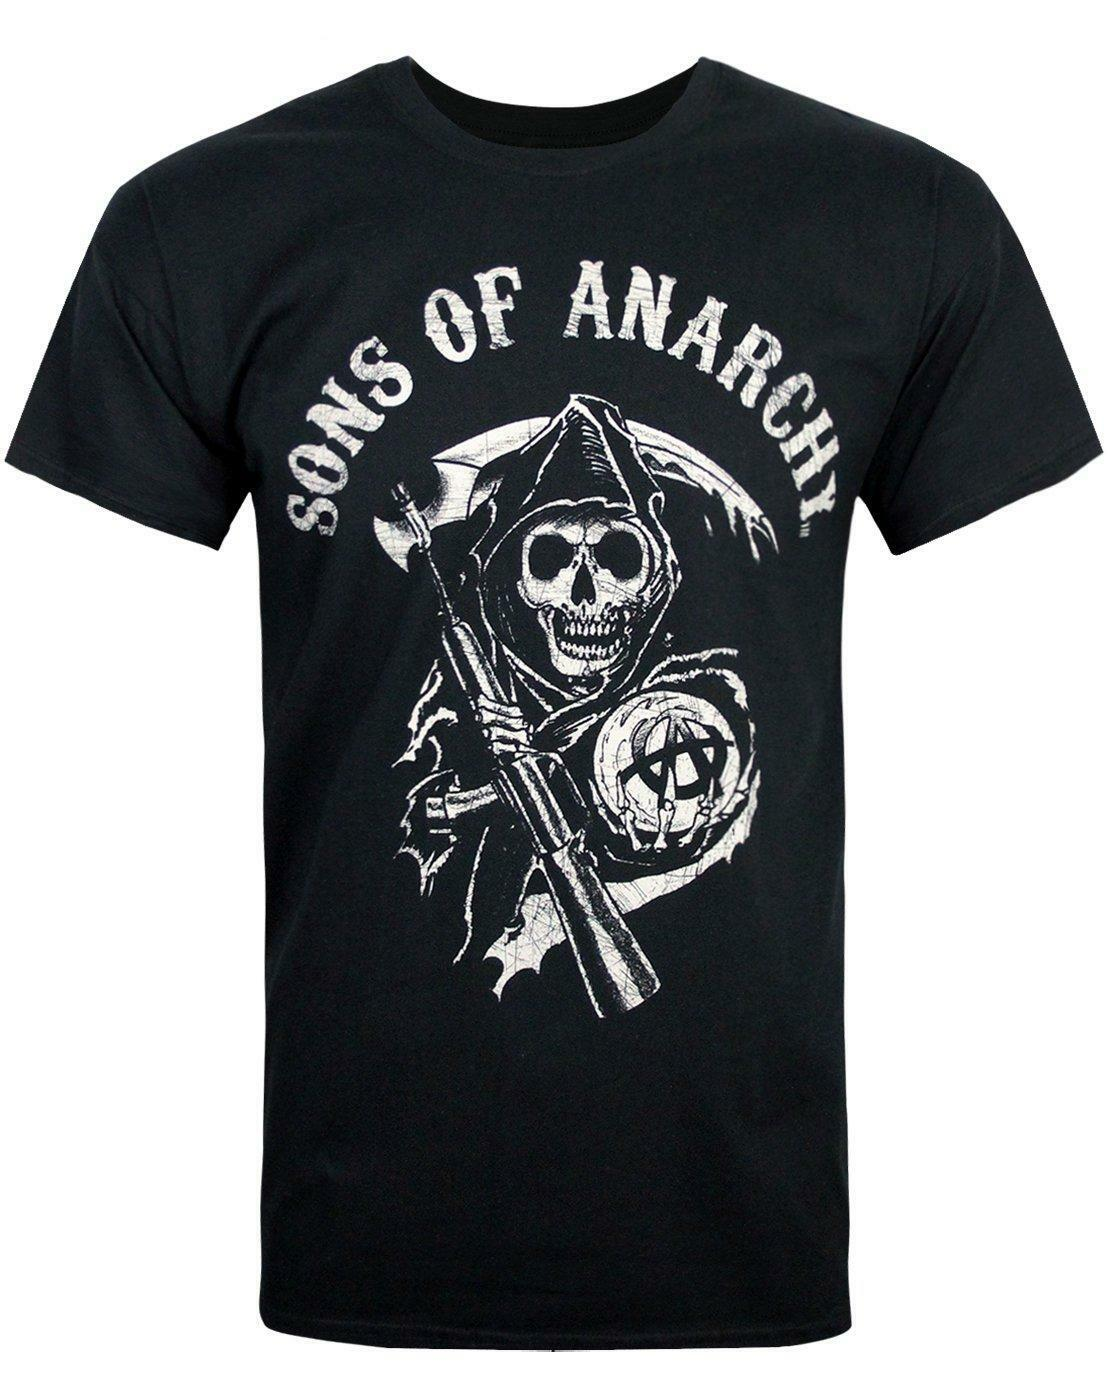 Sons Of Anarchy Clothes Ebay Uk